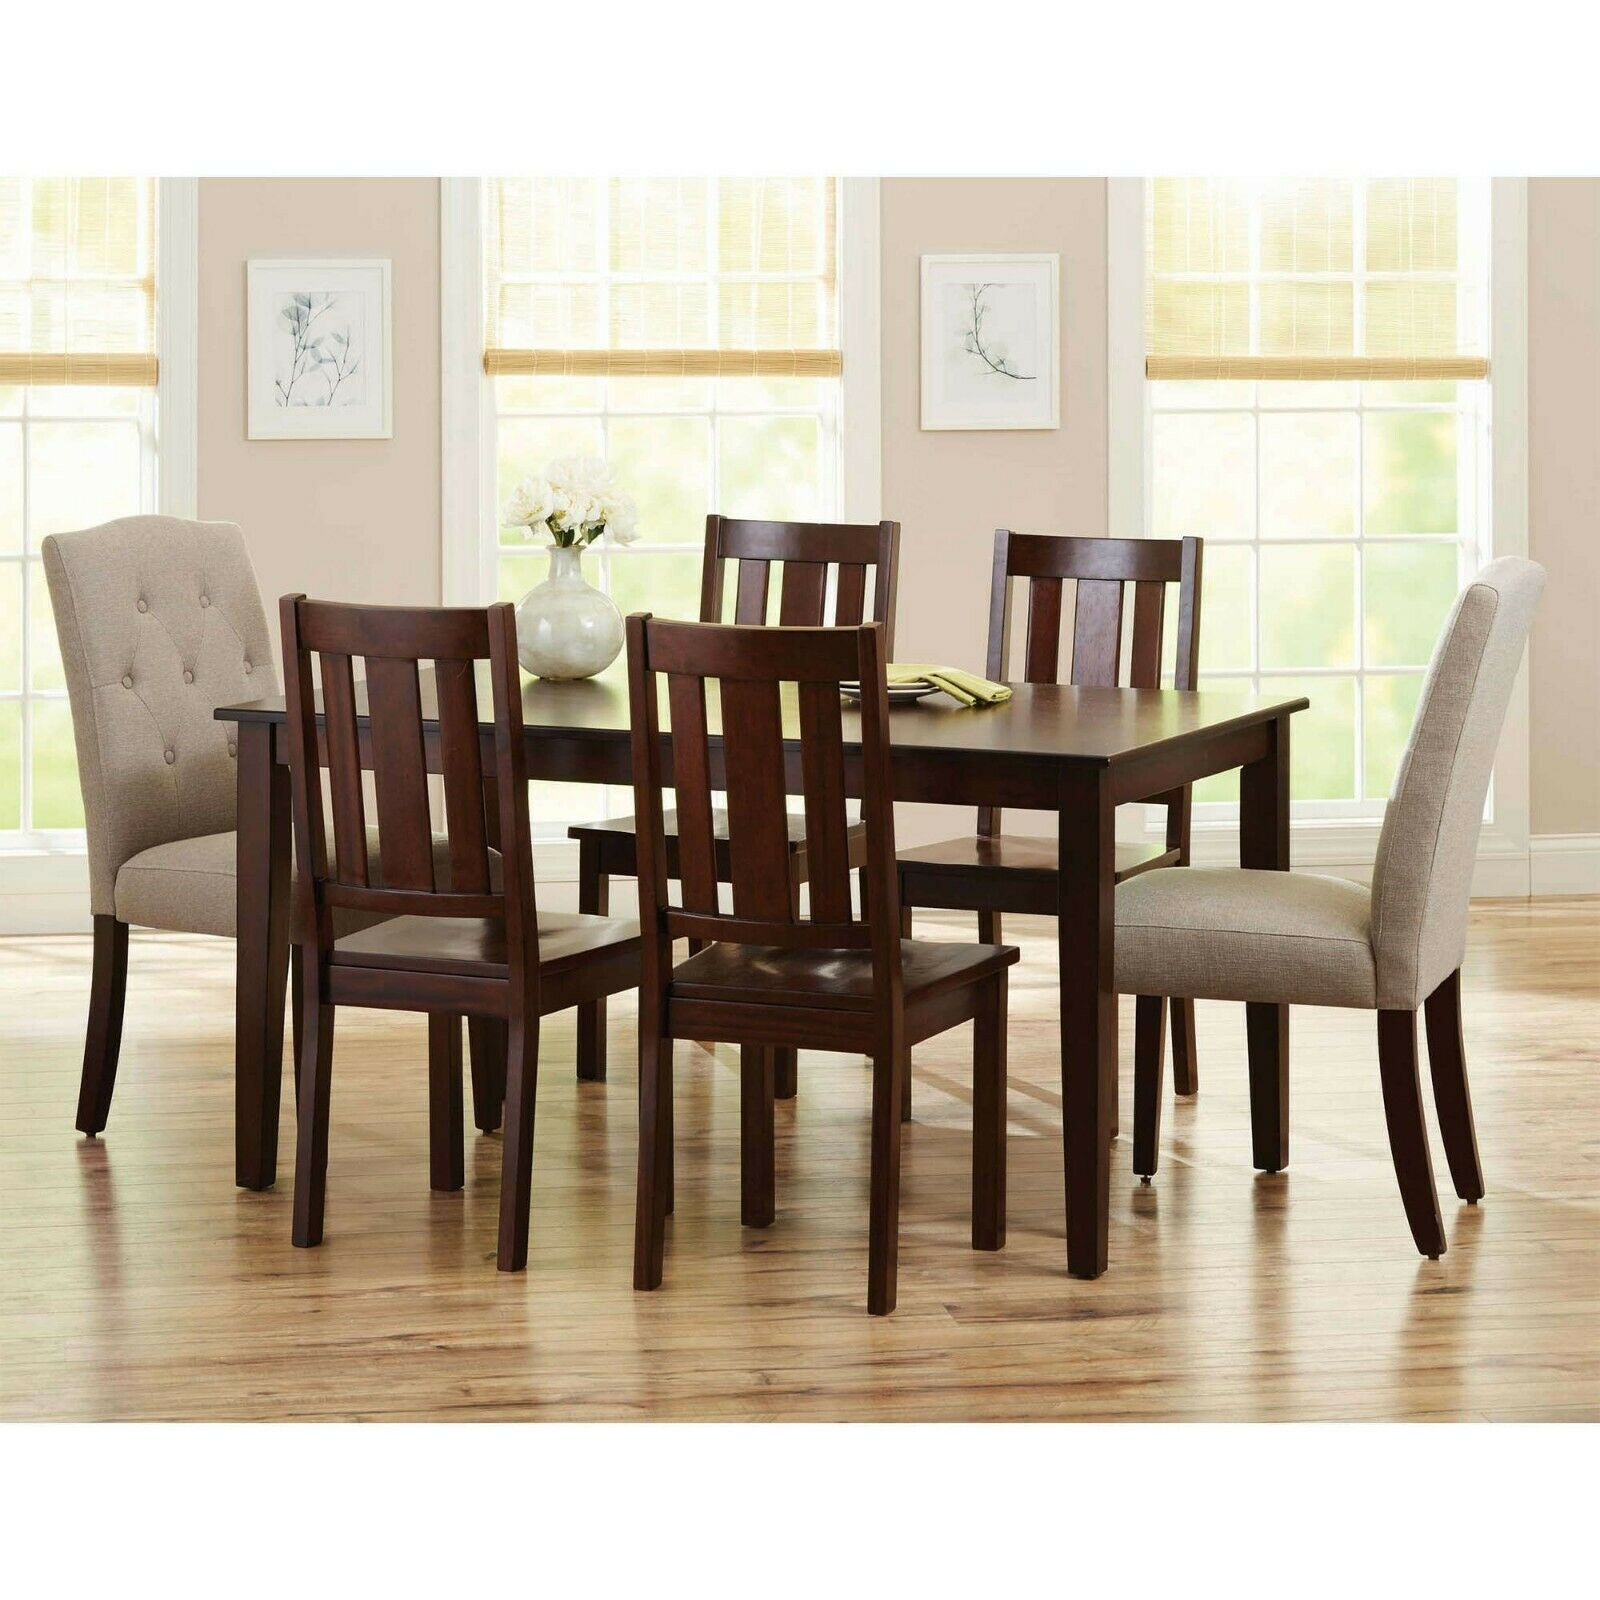 afc8954ef49a123156c23bfd3b1cfb17 - Better Homes And Gardens Bankston Dining Chair White 2 Pack